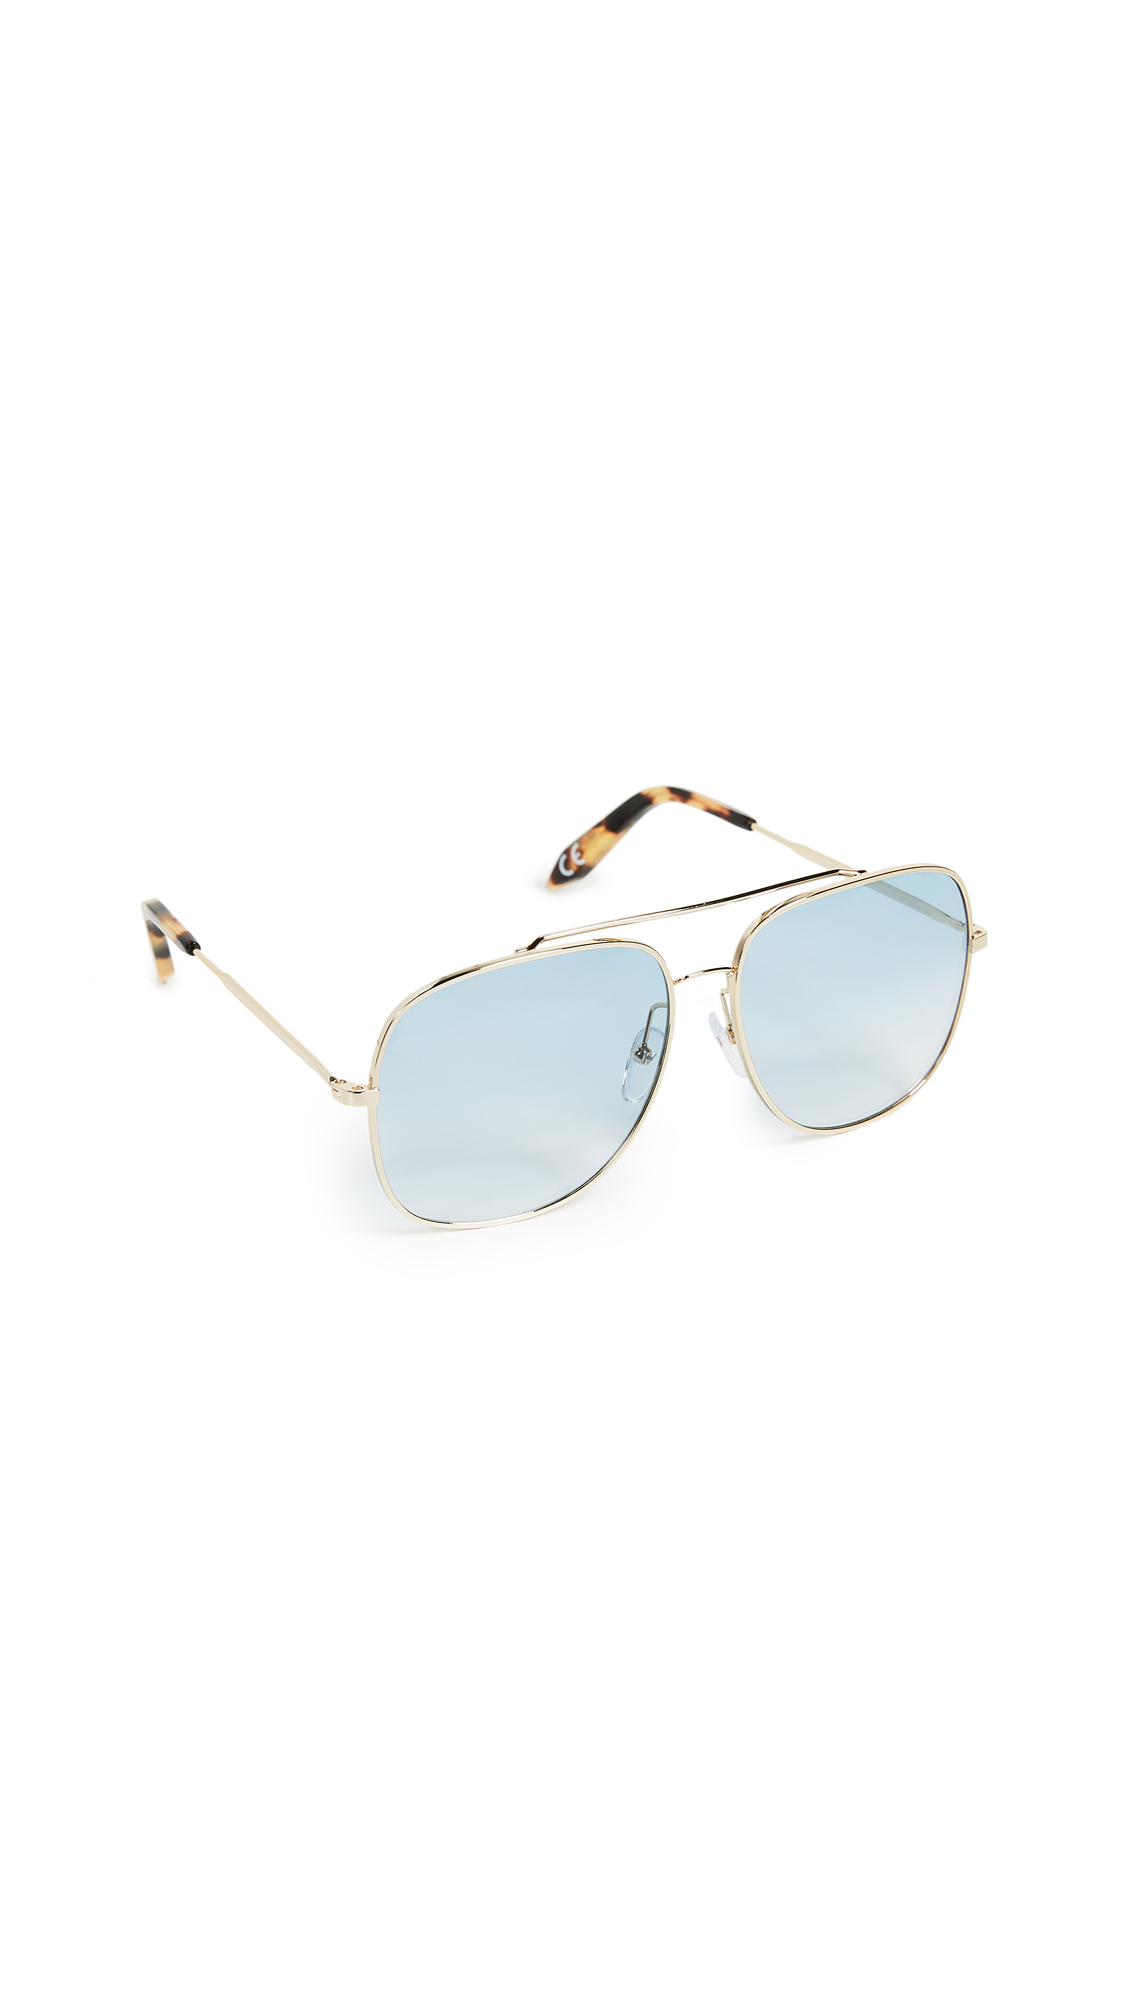 Victoria Beckham Power Frame - Metal Navigator Sunglasses - Pale Blue Grad